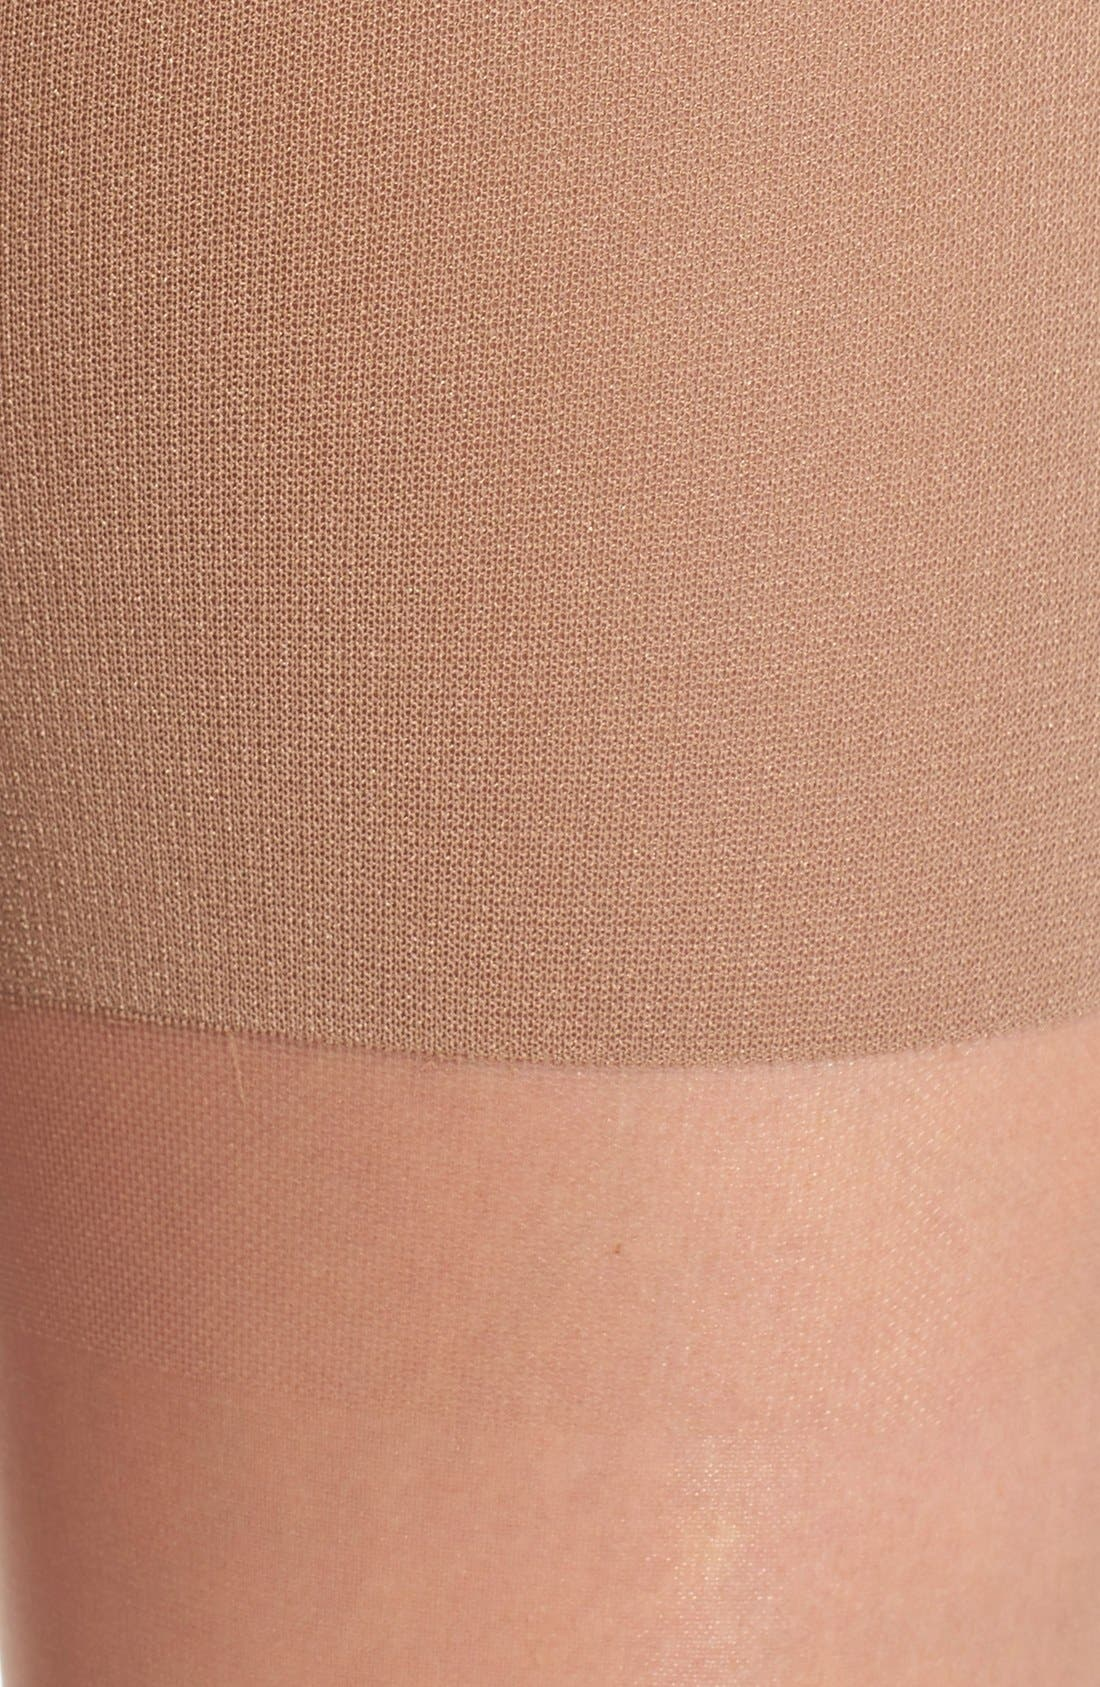 Alternate Image 2  - SPANX® Luxe High Waist Shaping Pantyhose